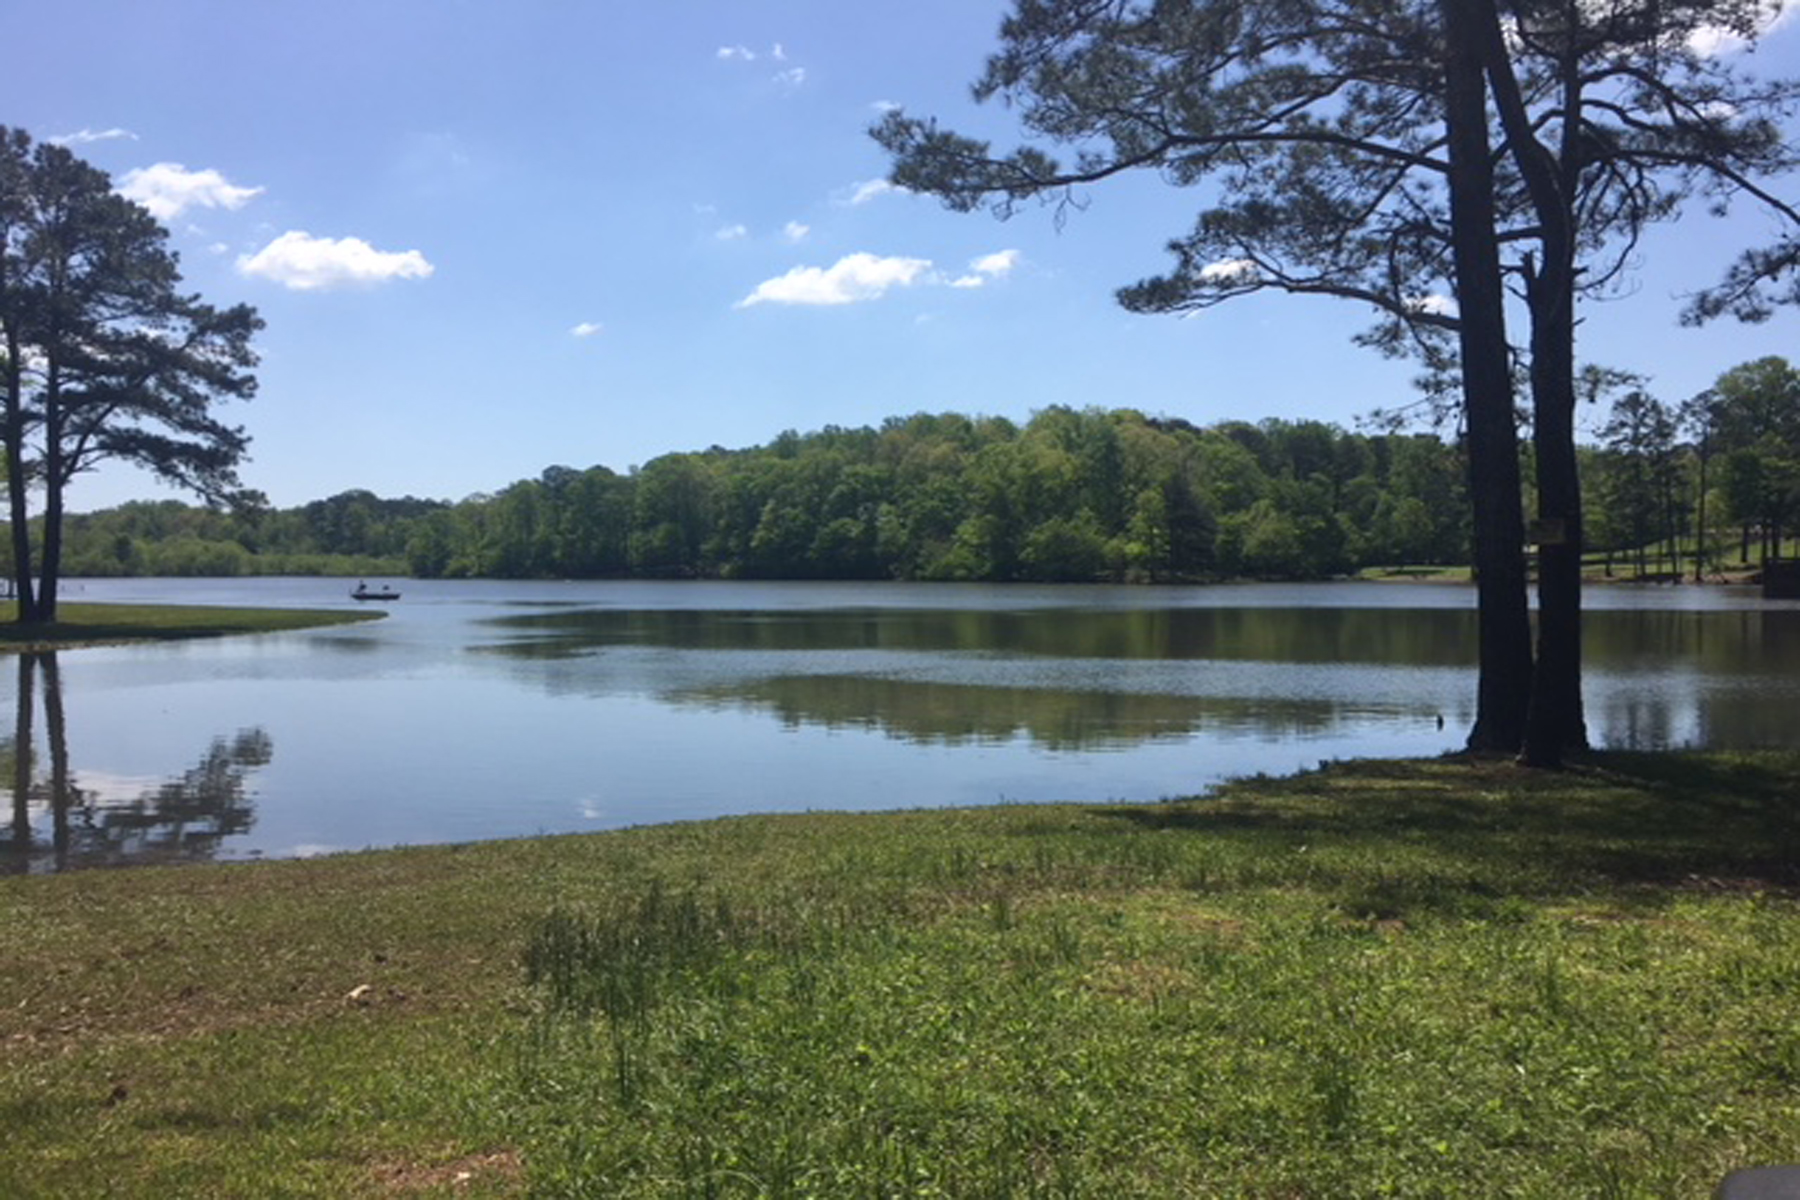 Land for Sale at Custom Homes in Private Gated Single Street Enclave Lot 2 Hammock Lane Milton, Georgia 30004 United States